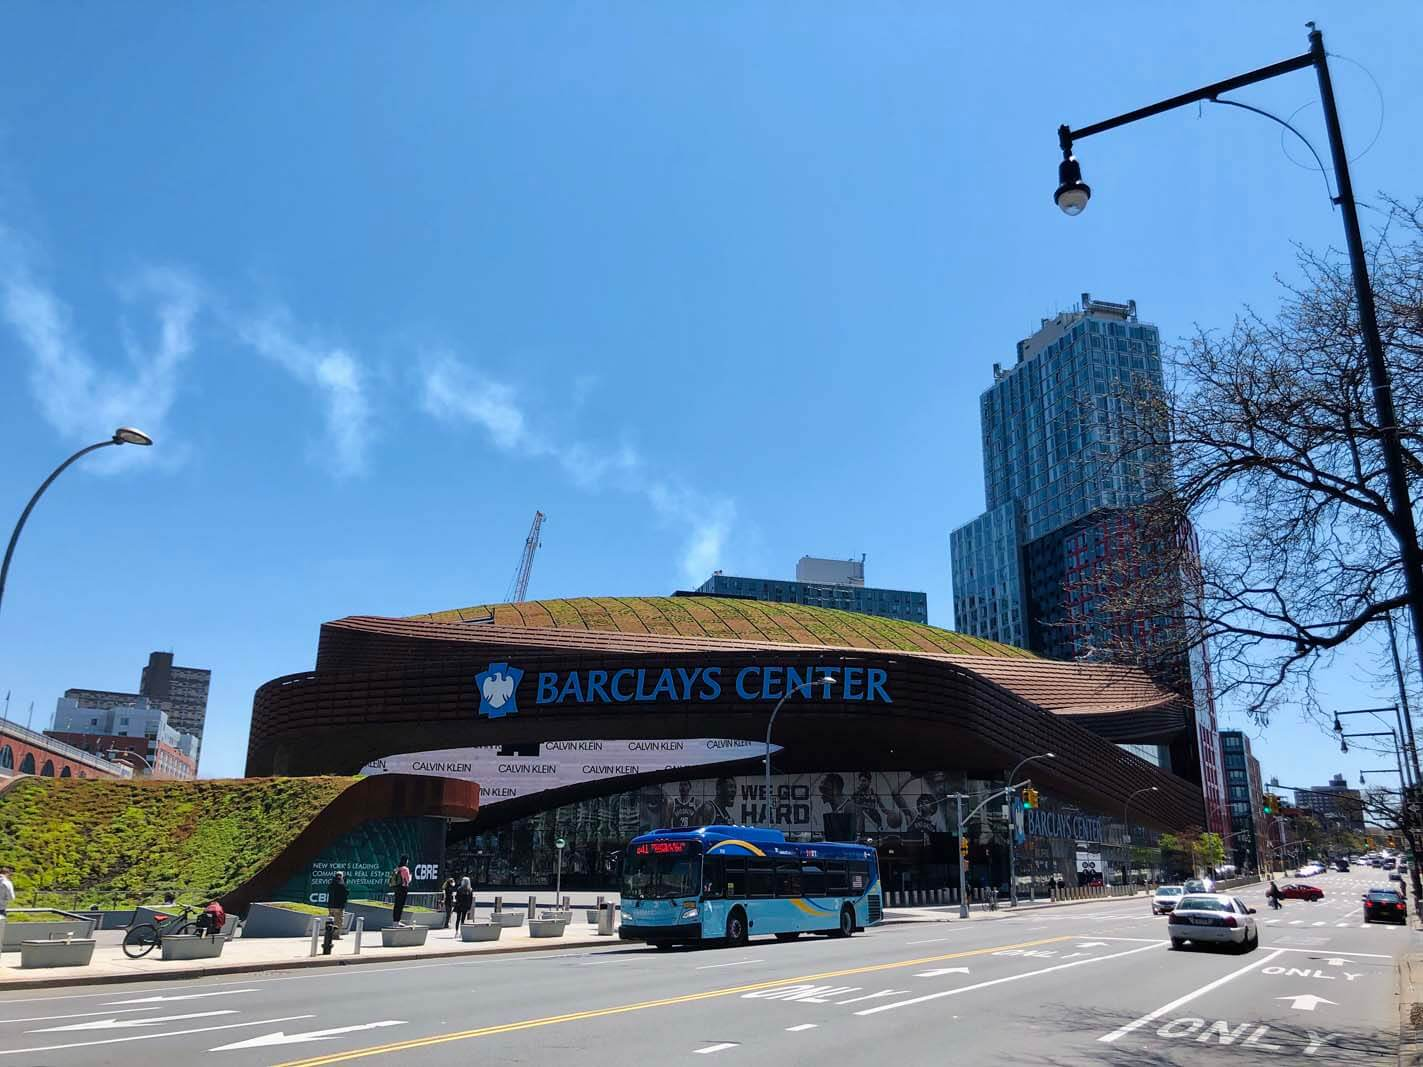 Barclays Center in Downtown Brooklyn